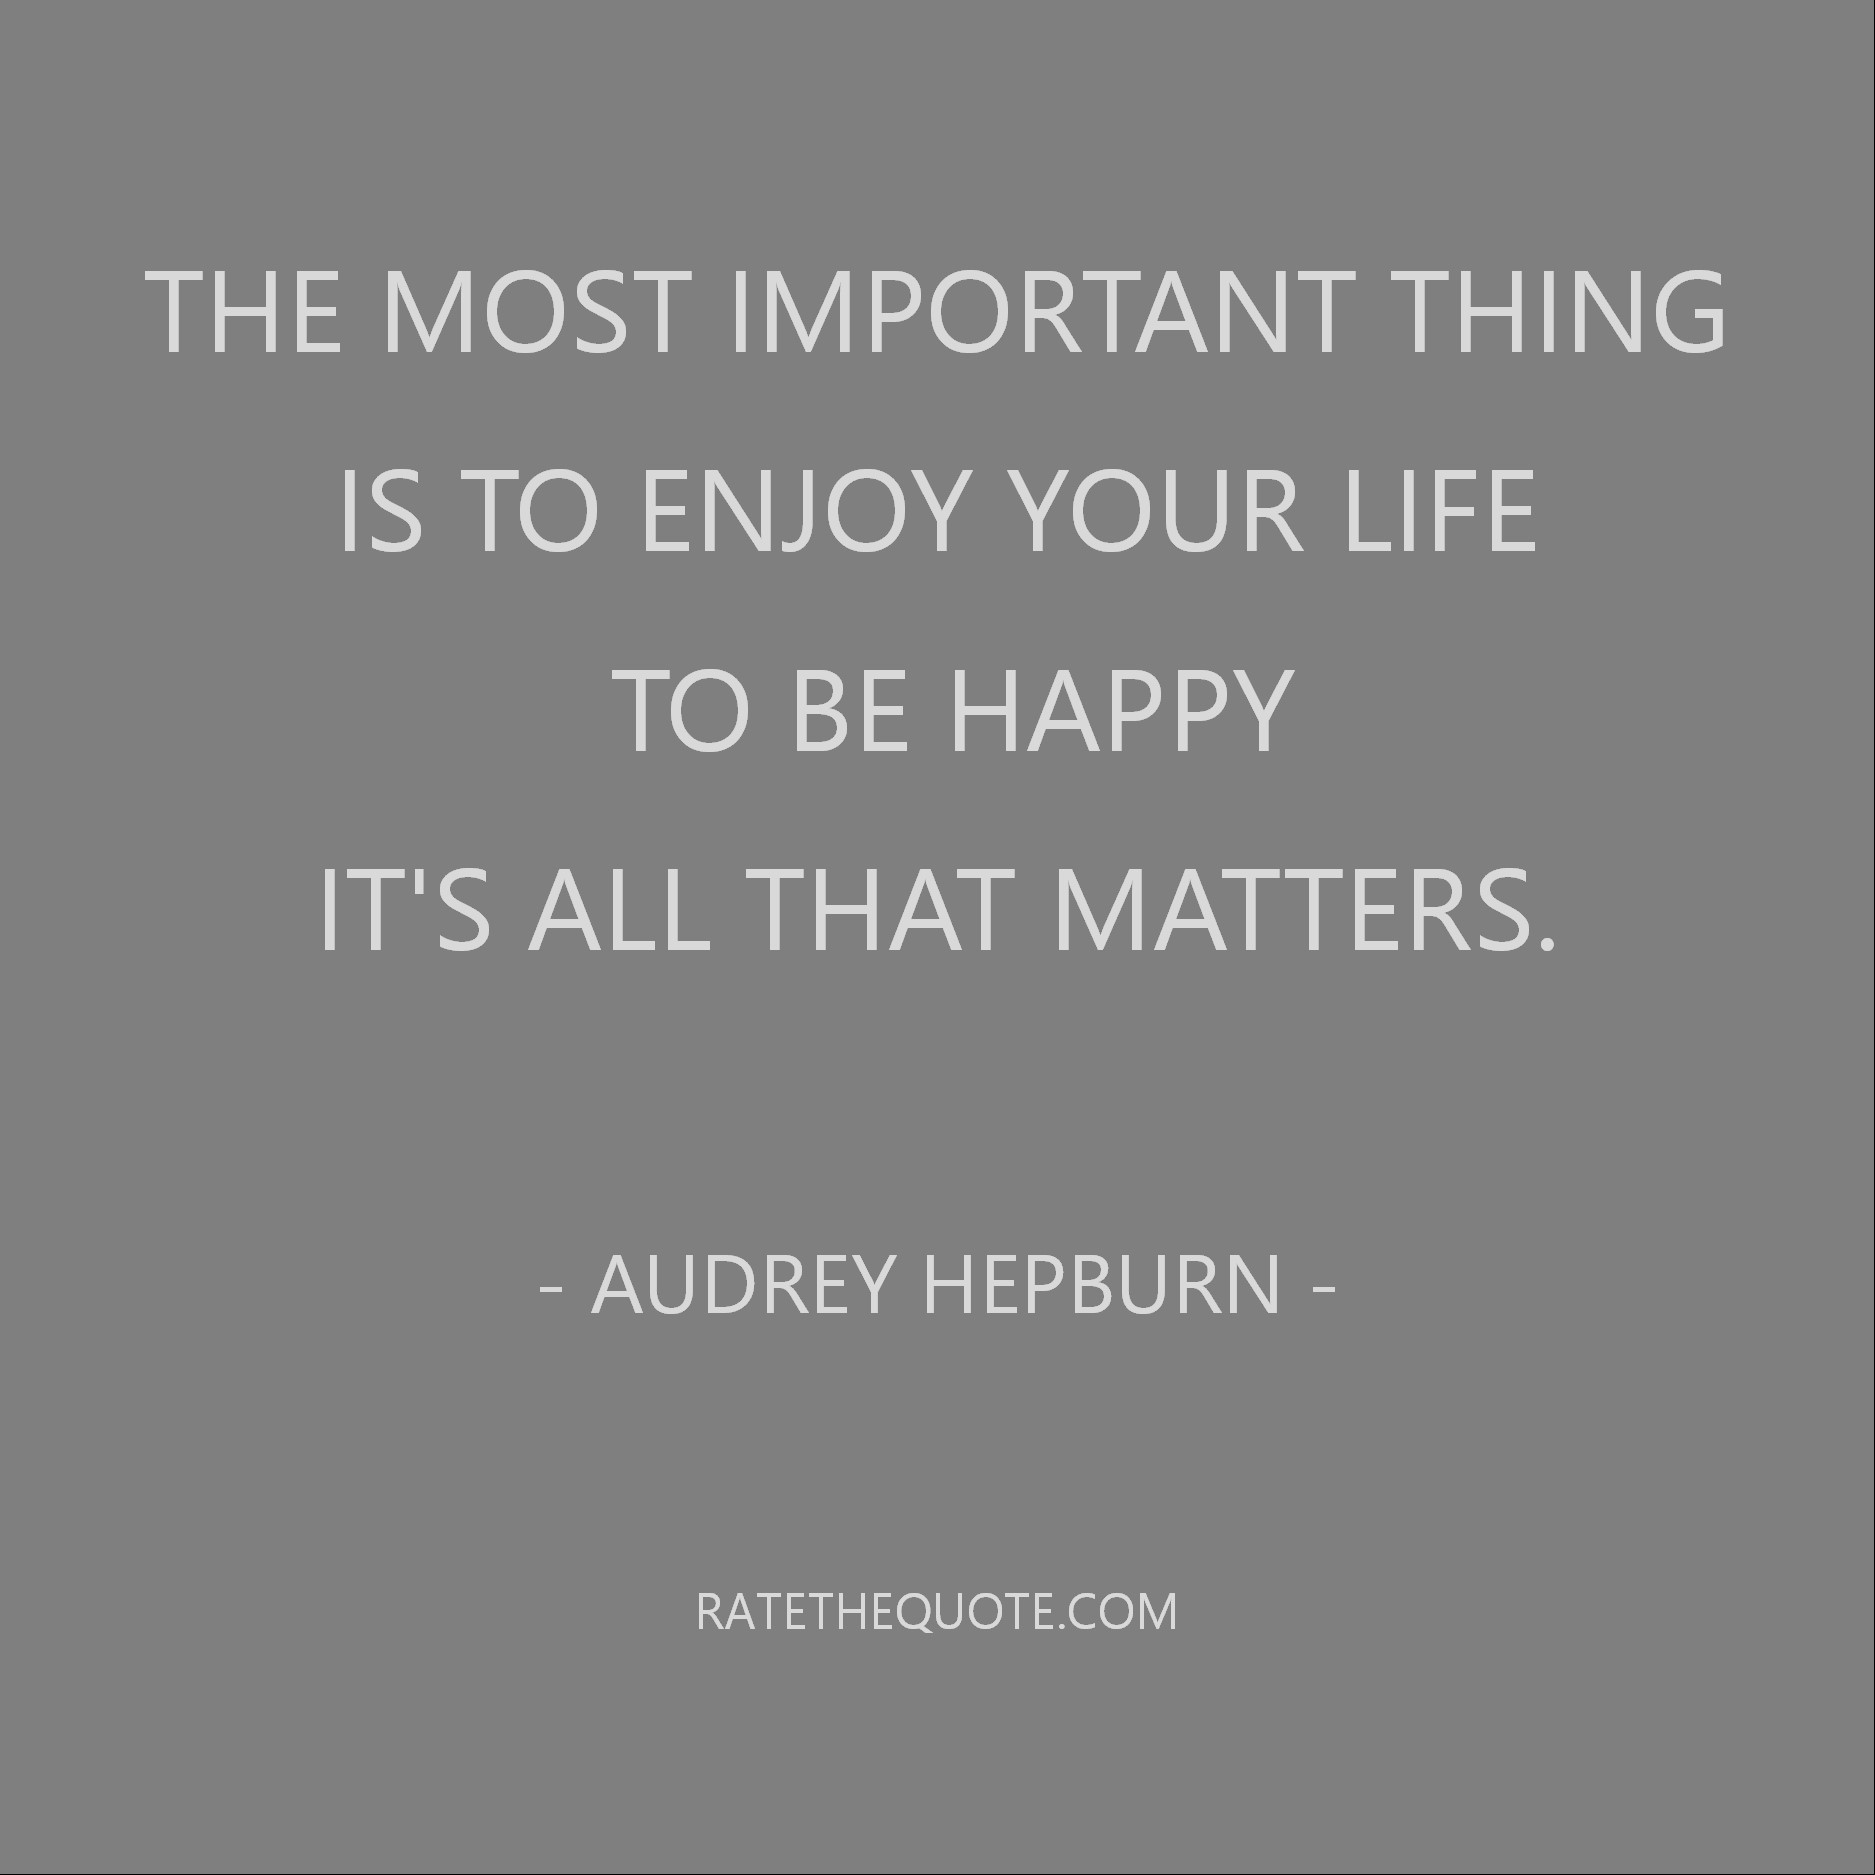 The most important thing is to enjoy your life - to be happy - it's all that matters. Audrey Hepburn